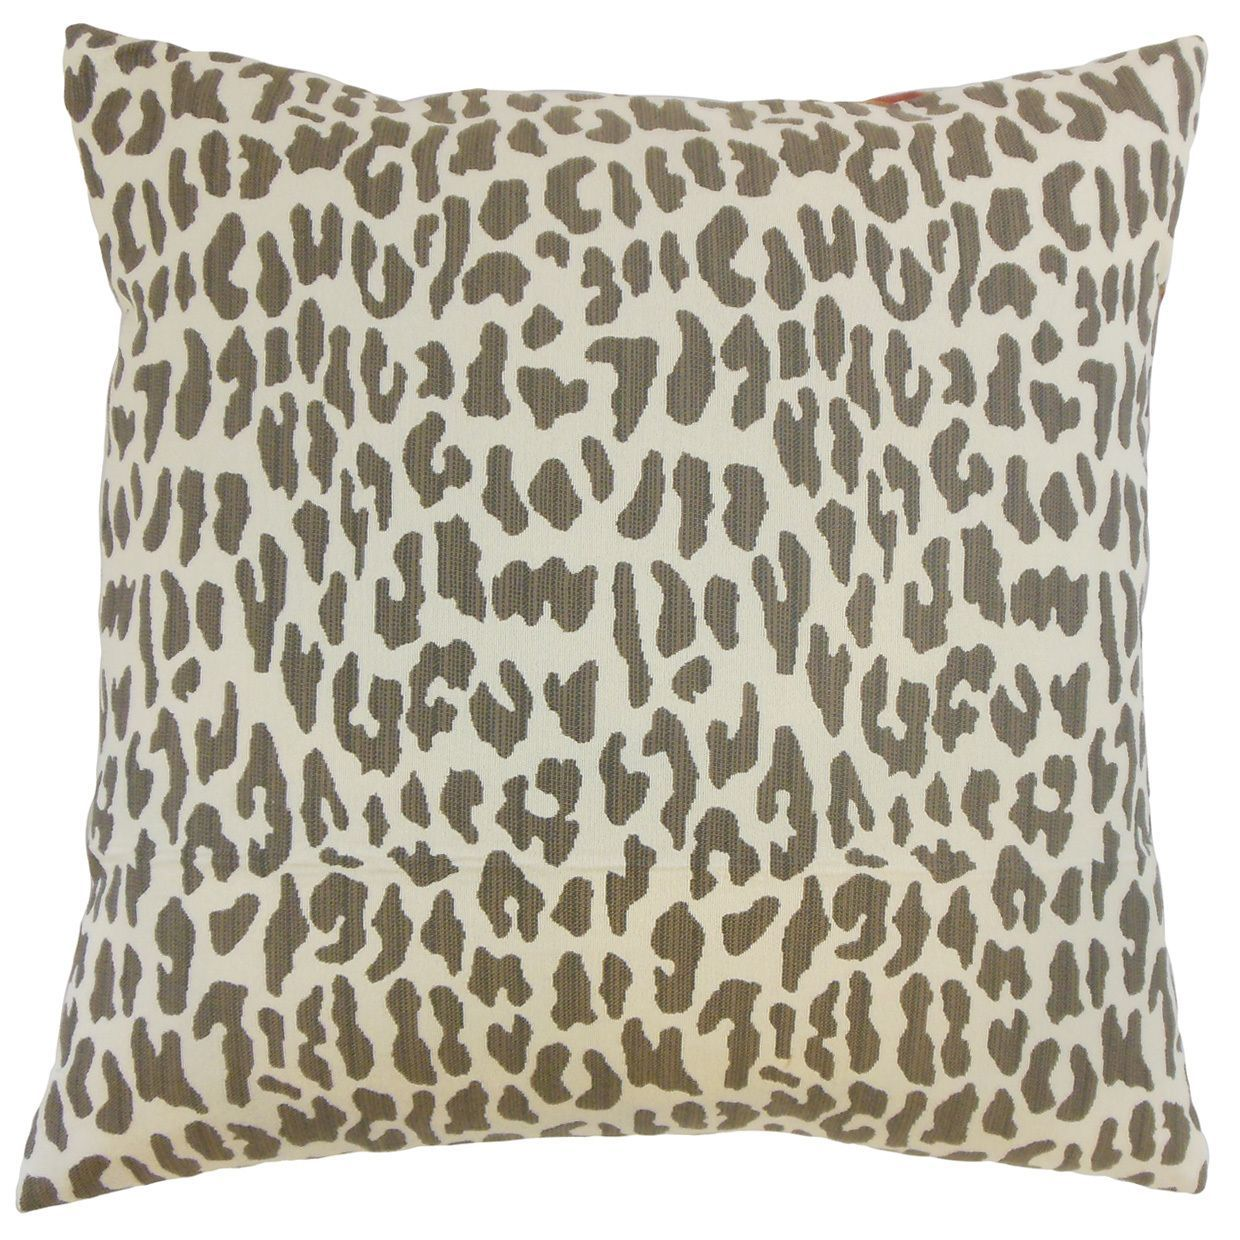 Ilandere Animal Print Throw Pillow Cover (Size), Multi, Size 19 x ...